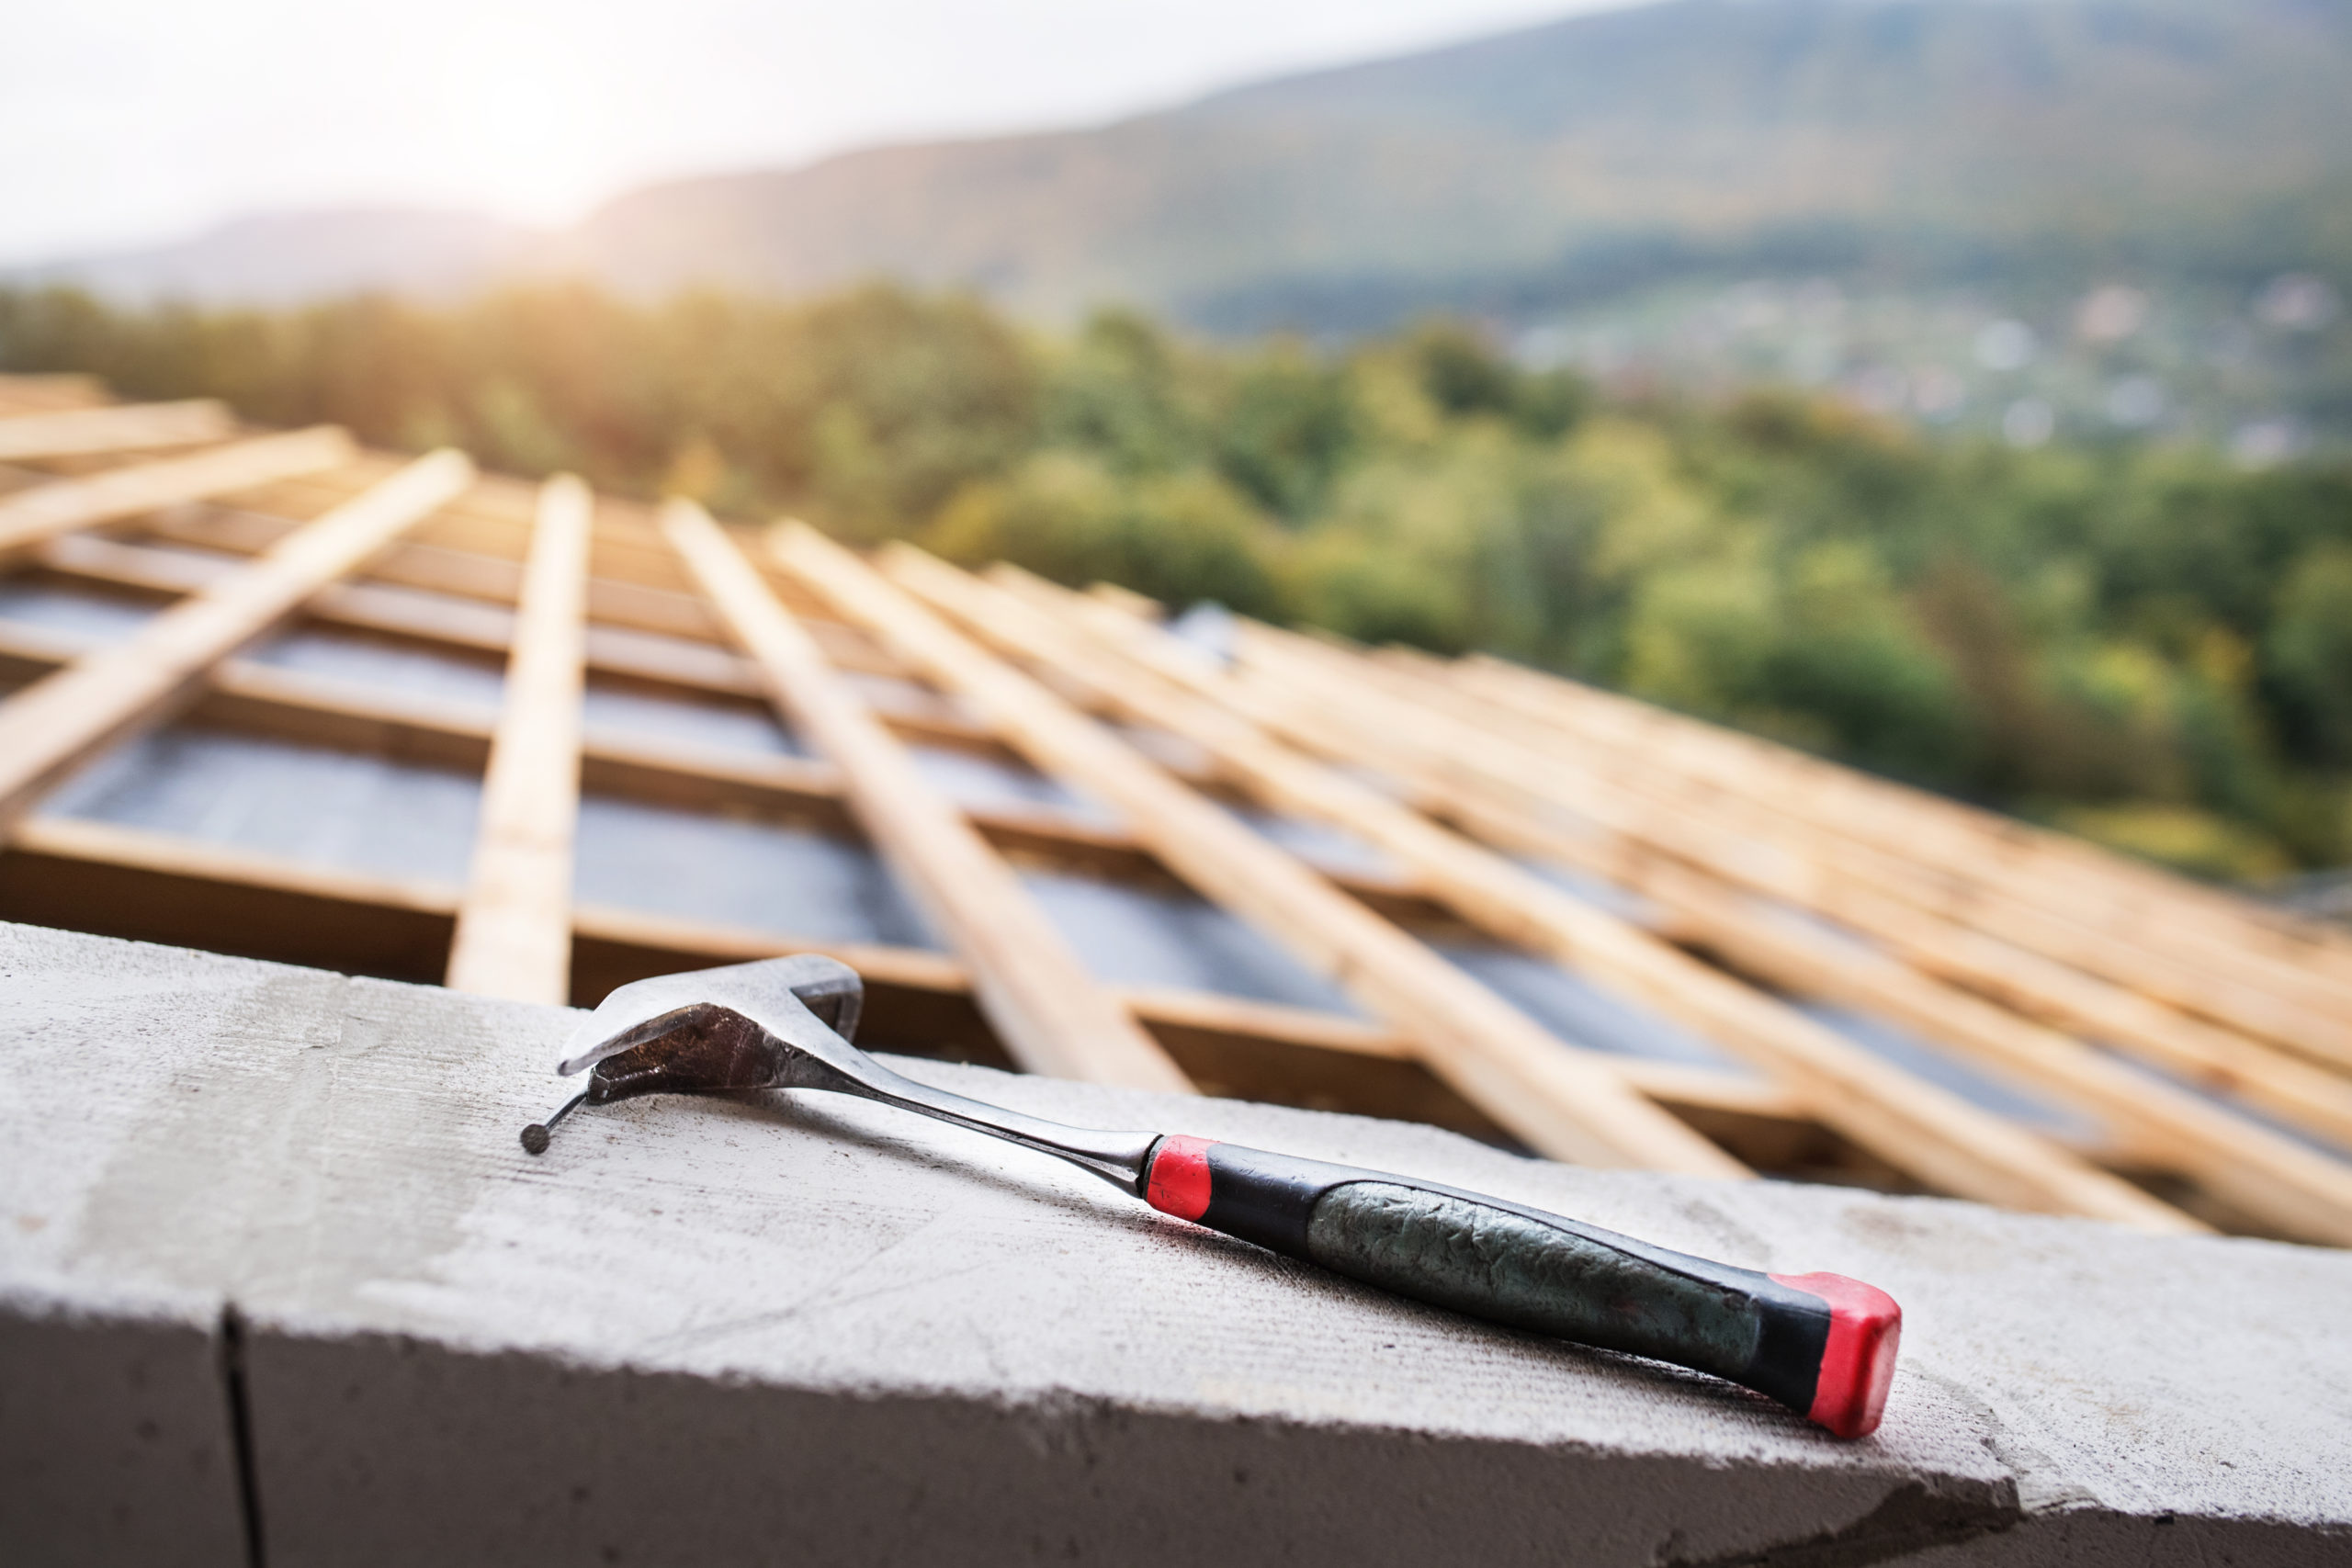 Hammer on the roof on the construction site. House construction.